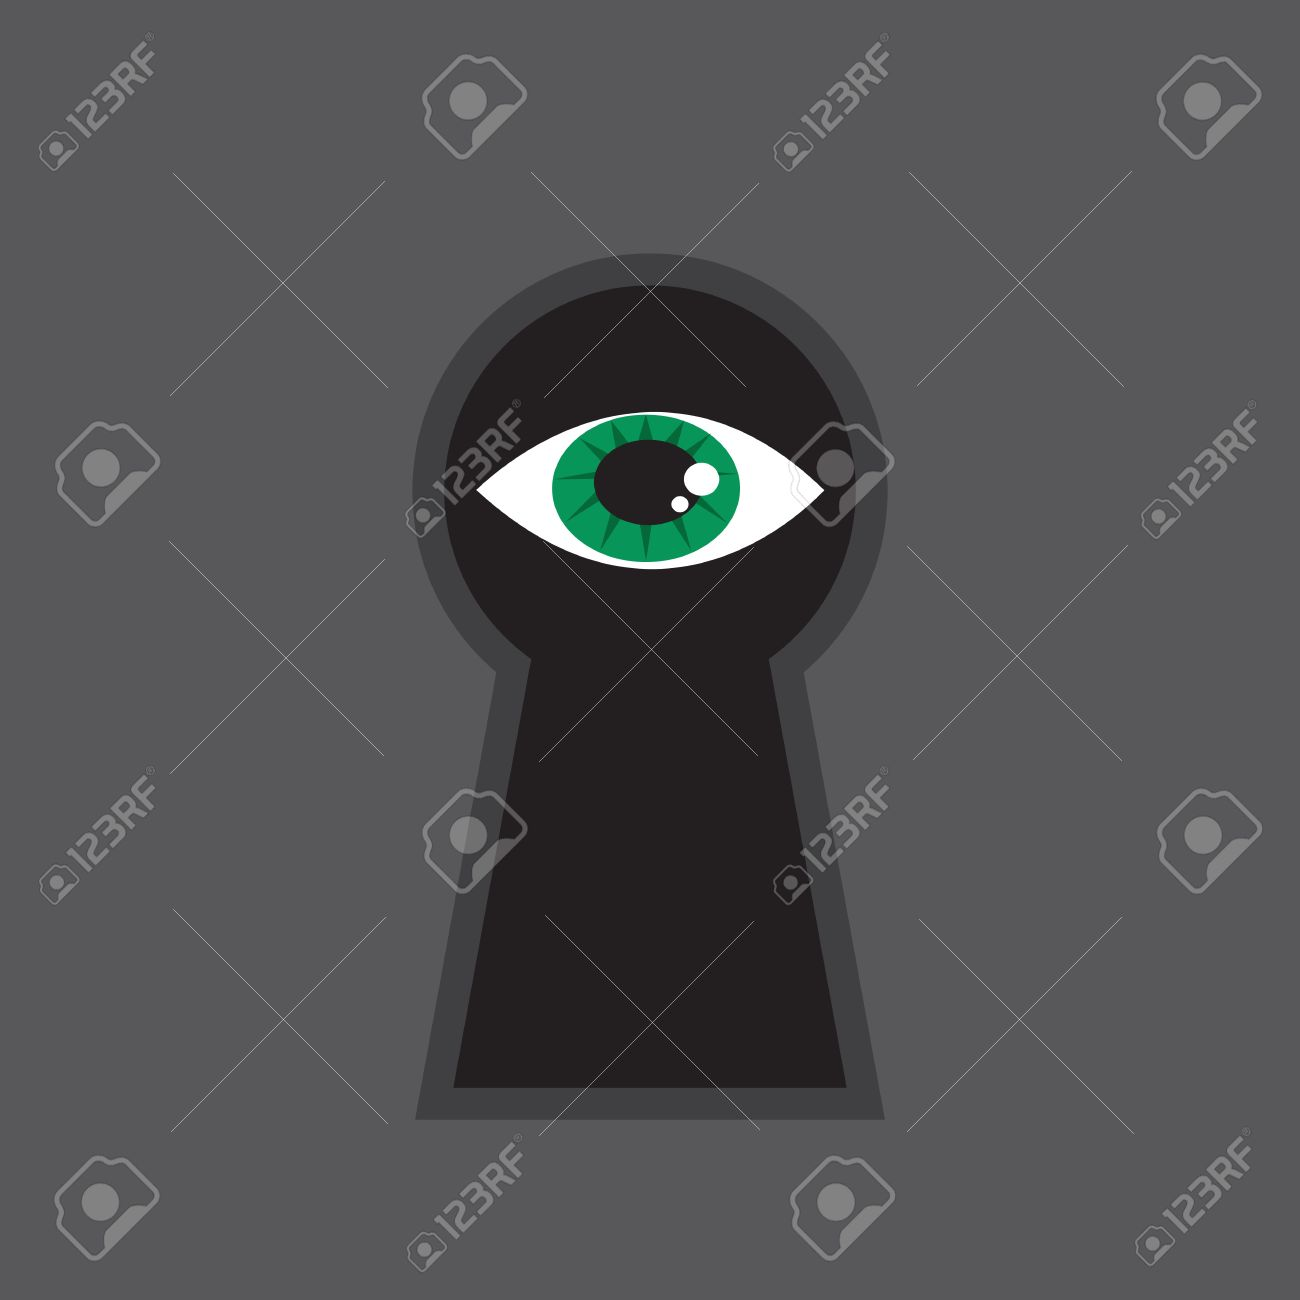 Eye Looking Through Large Keyhole Royalty Free Cliparts, Vectors.